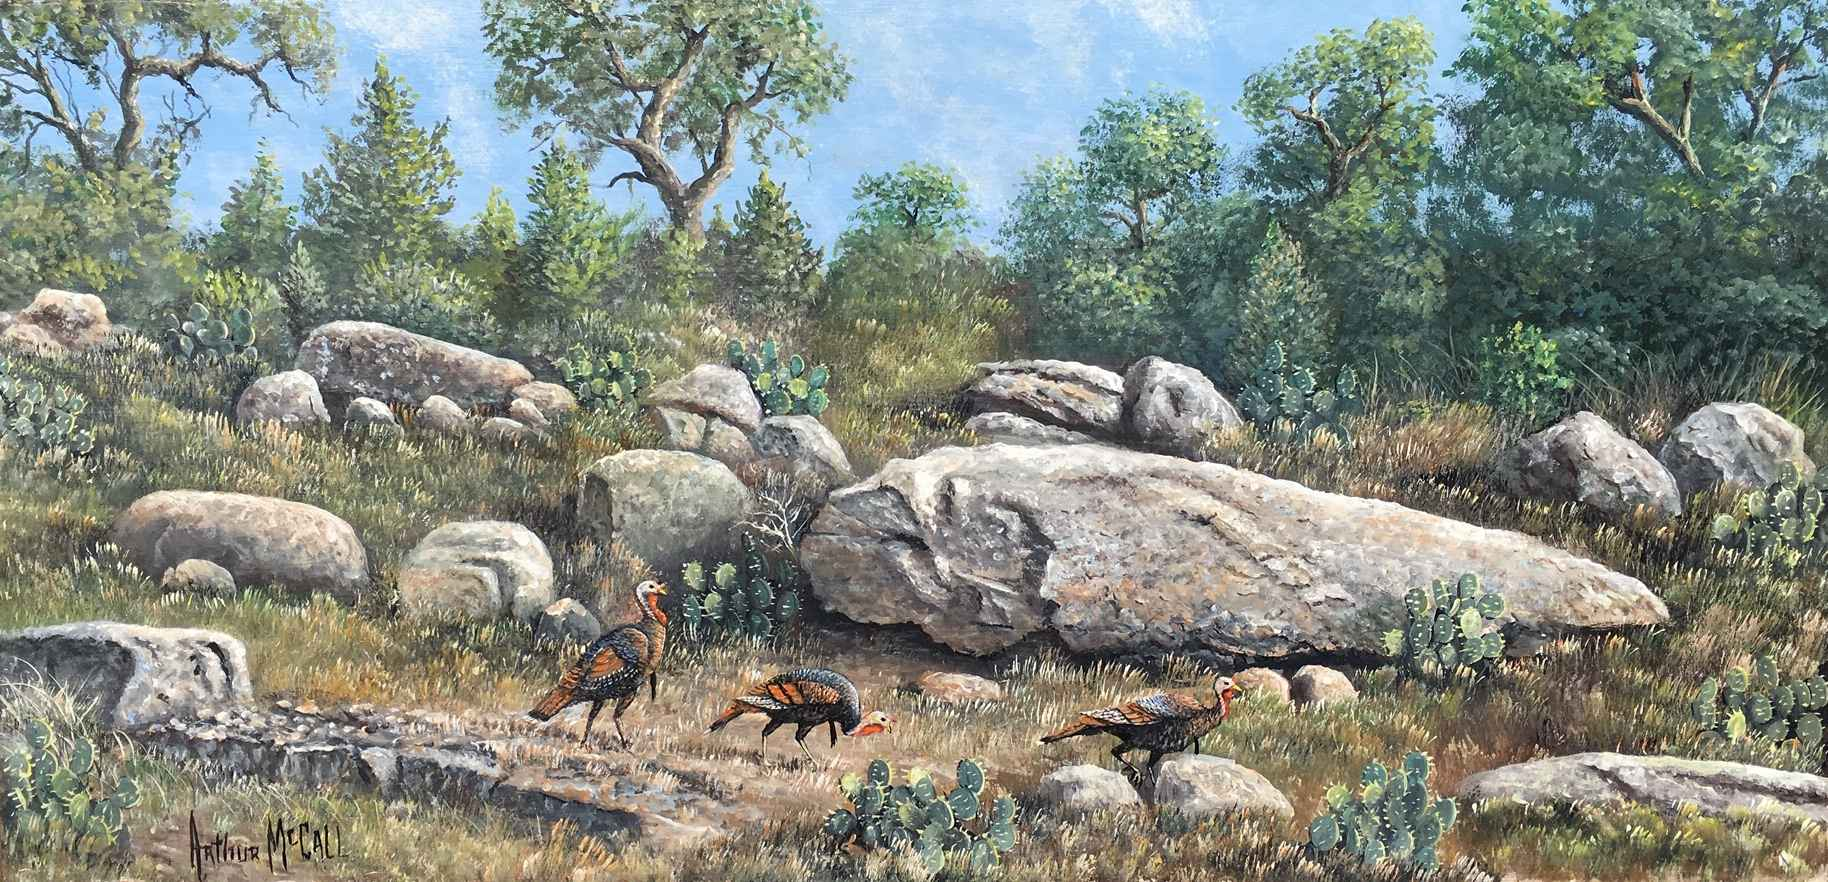 Foraging Ahead by  Arthur McCall - Masterpiece Online